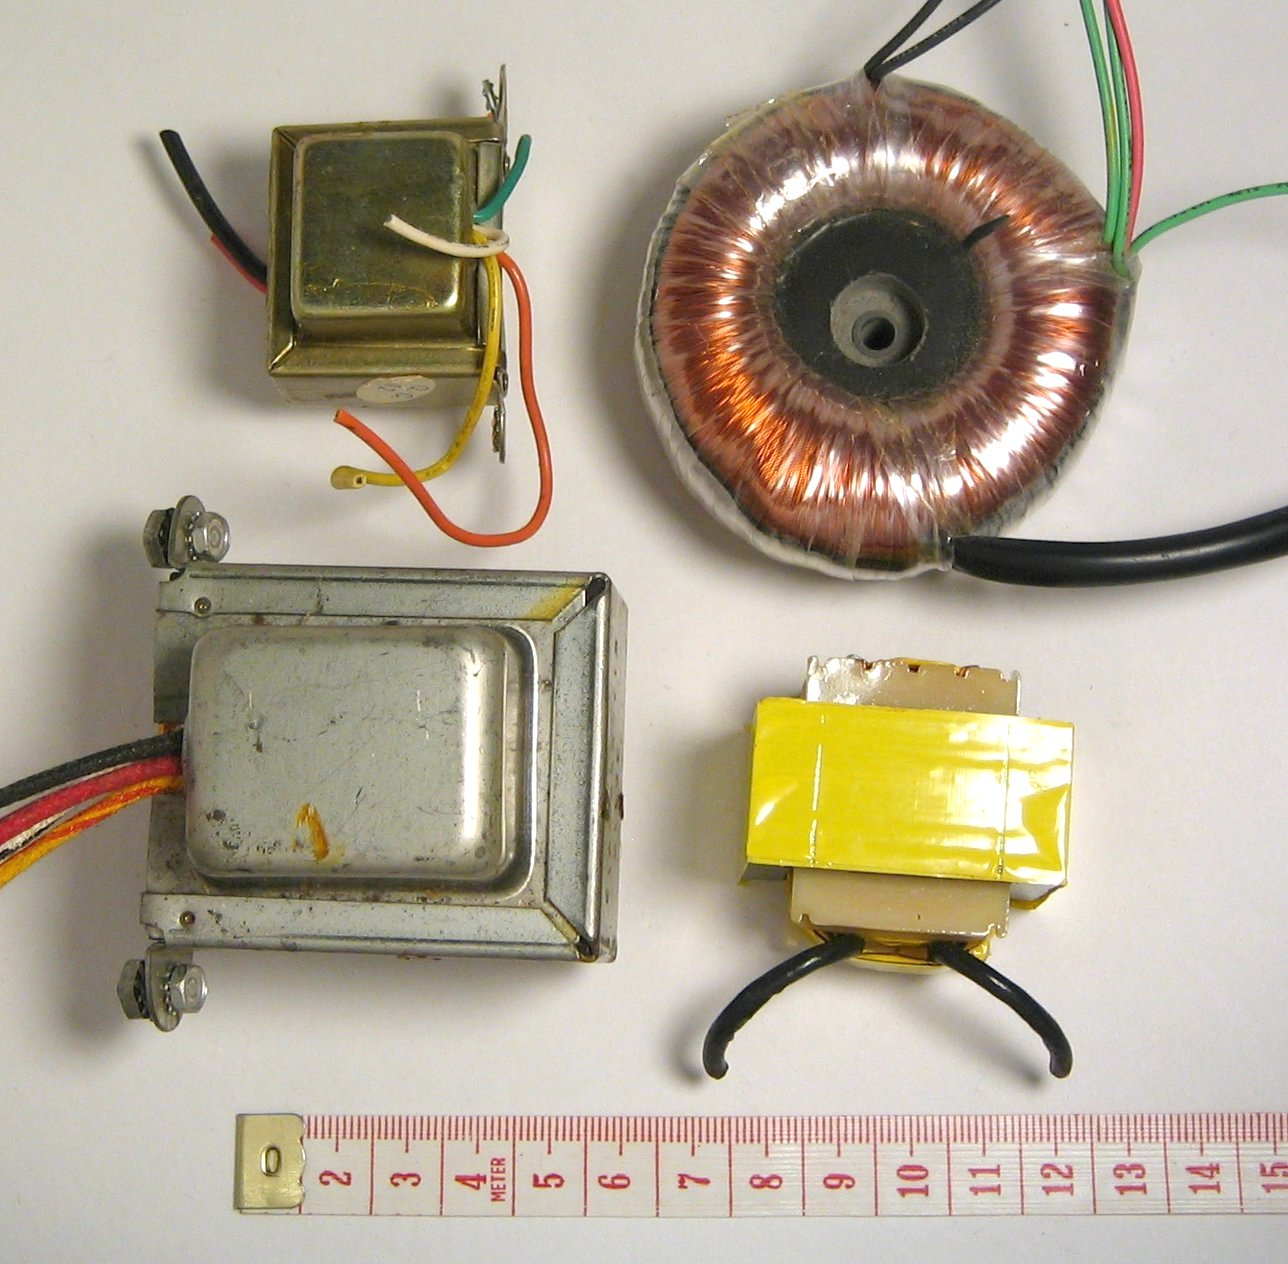 Circuit Theory Mutual Inductance Wikibooks Open Books For An Inductor Speaker Using Transformers